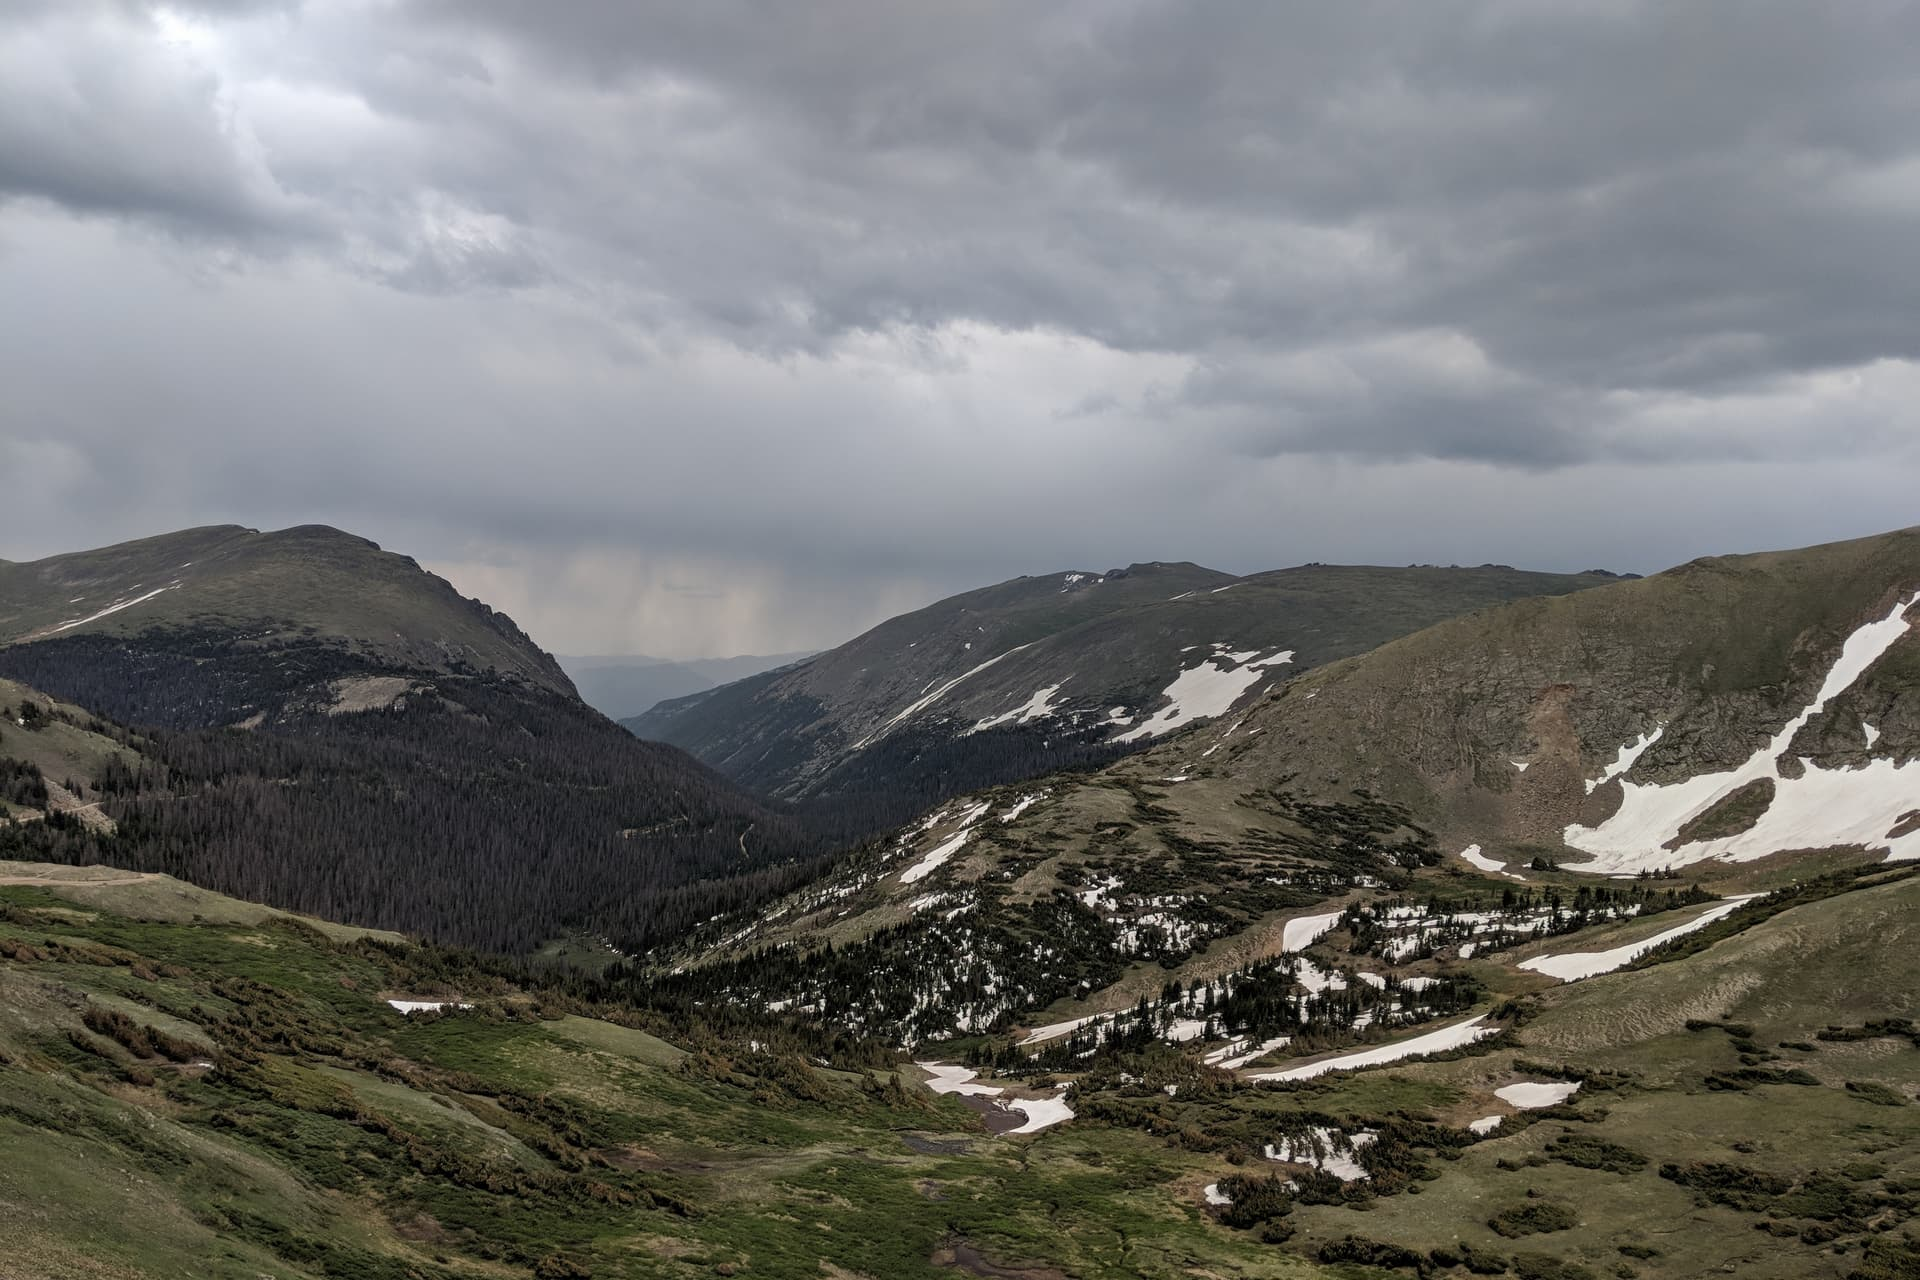 An alpine valley. The sky is gray with low clouds, and rain obscures what lies beyond the valley.